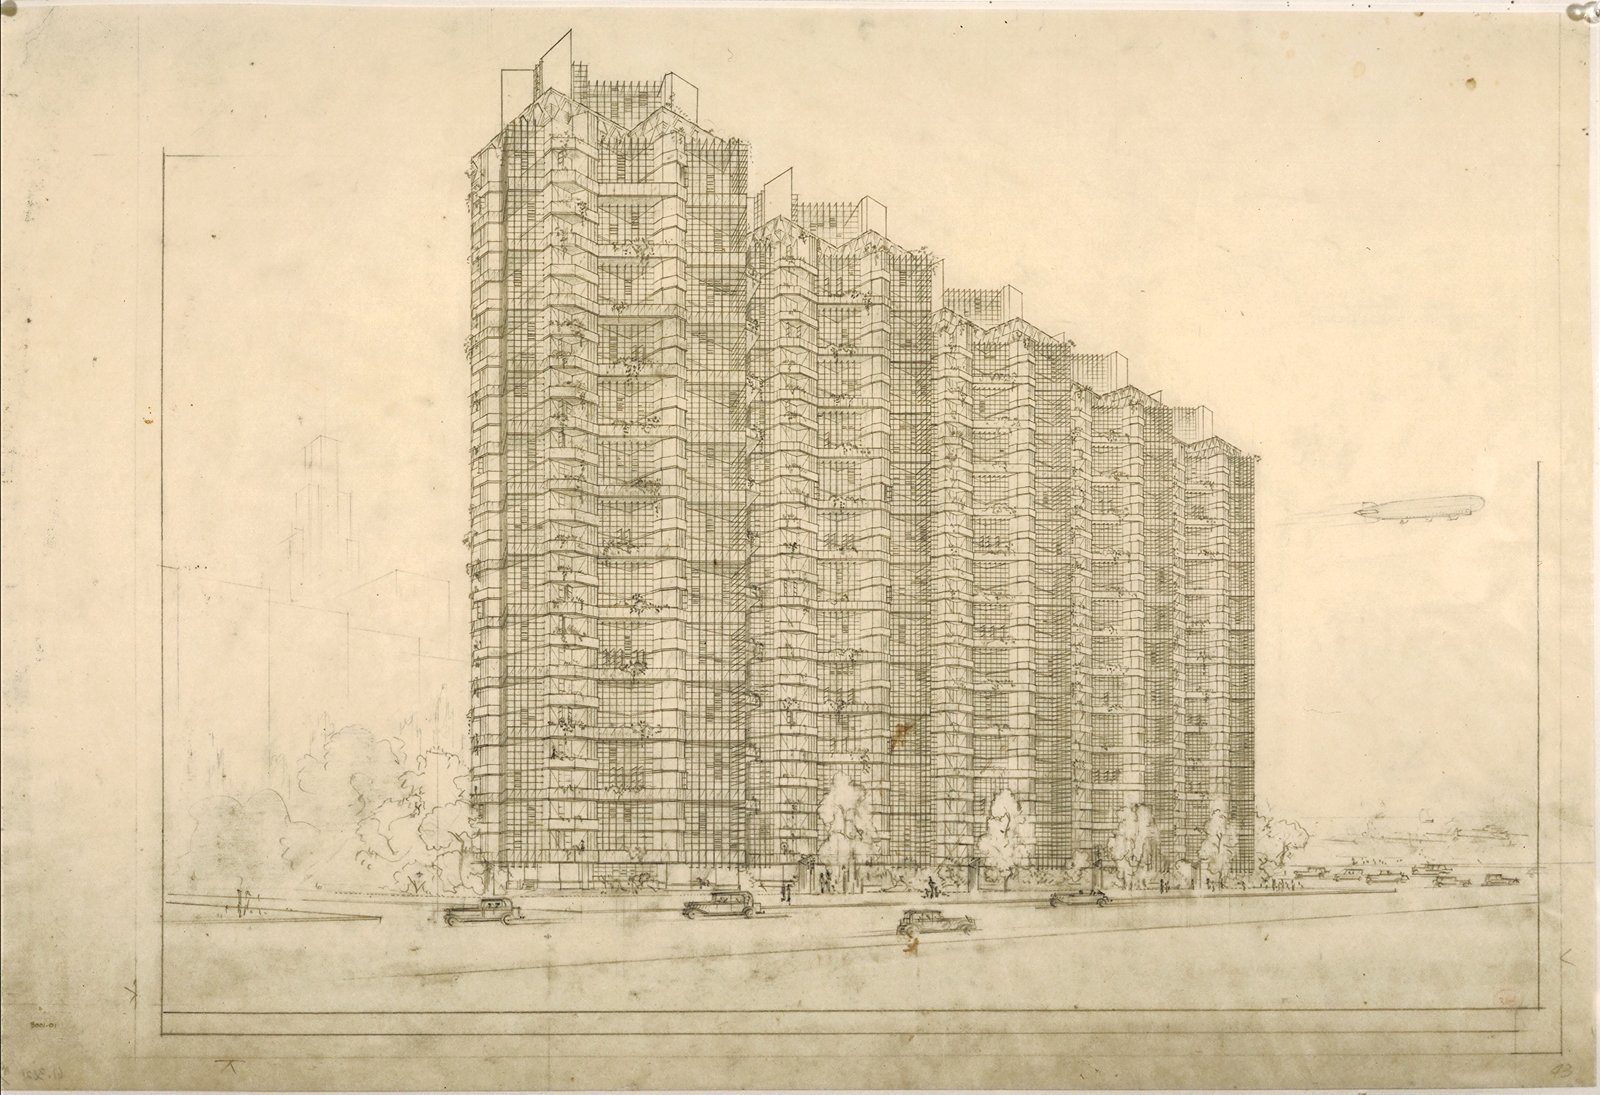 Although the Price Tower is Wright's only realized skyscraper, the rendering of the Grouped Towers in Chicago portrays similar themes of lightness and balance. The Frank Lloyd Wright Foundation Archives (The Museum of Modern Art | Avery Architectural & Fine Arts Library, Columbia University, New York).  Modern Master: Frank Lloyd Wright from The Museum of Modern Art: Frank Lloyd Wright Exhibition